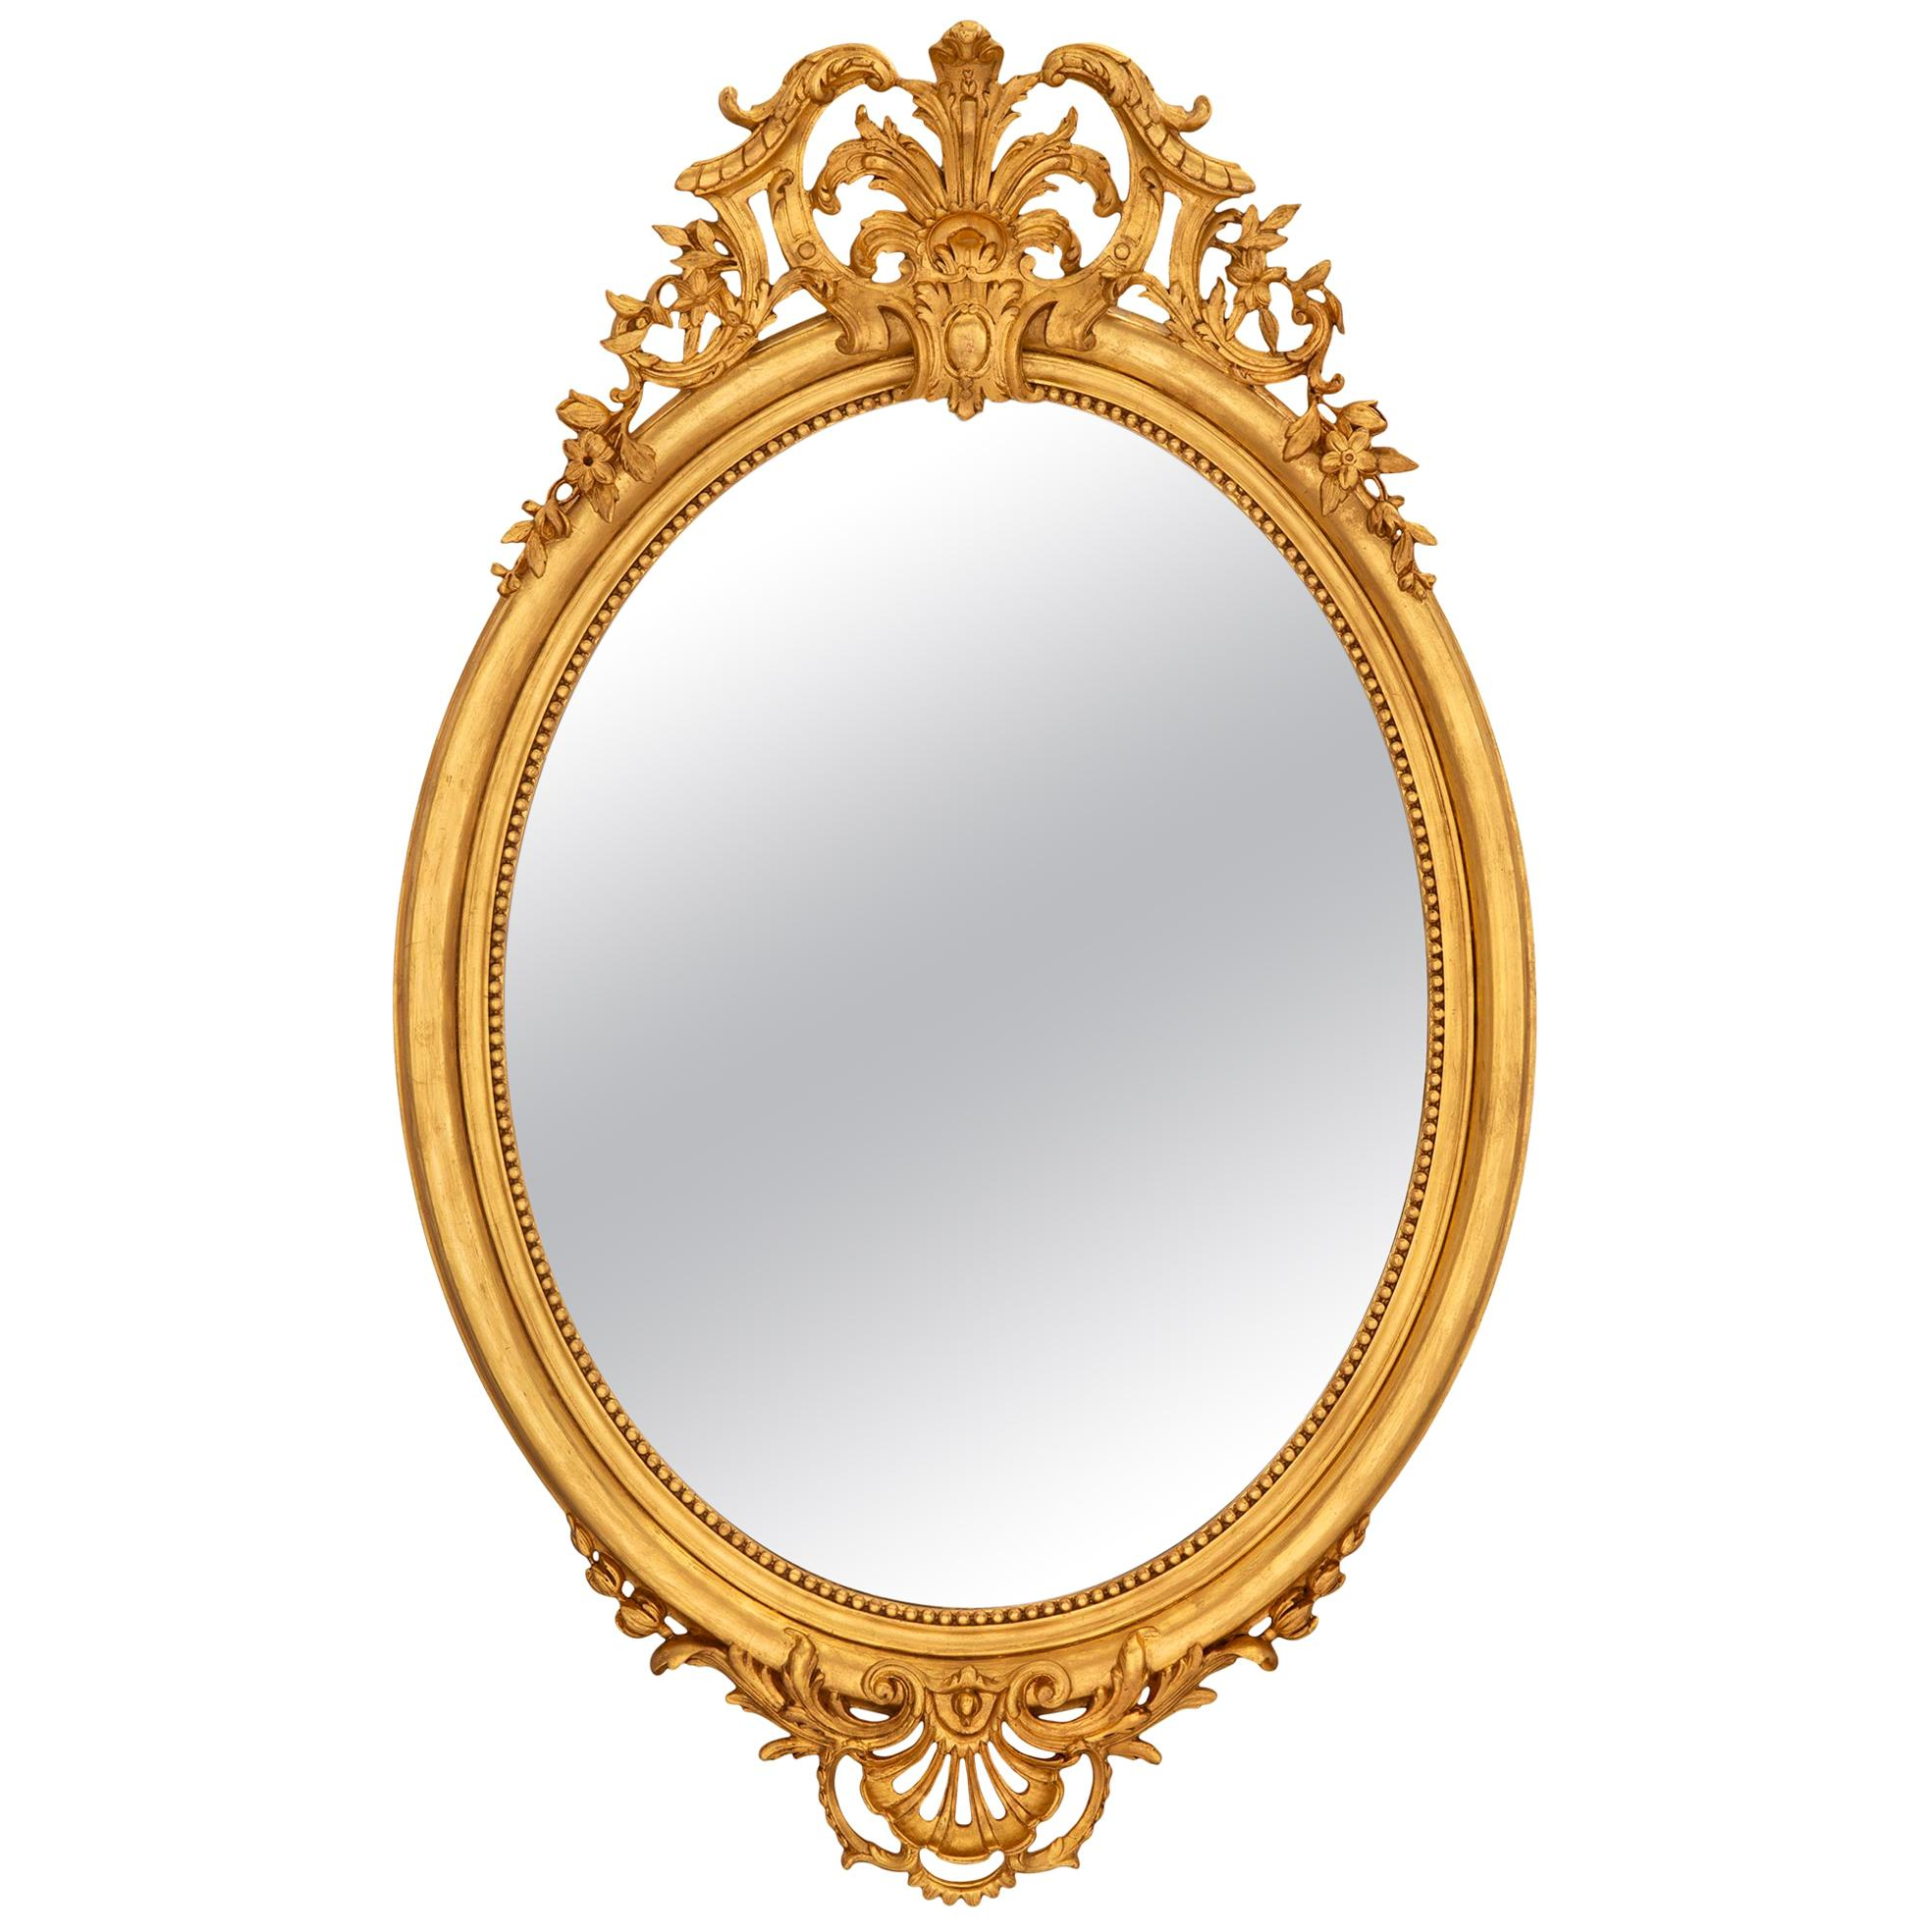 French 19th Century Régence Style Giltwood Mirror